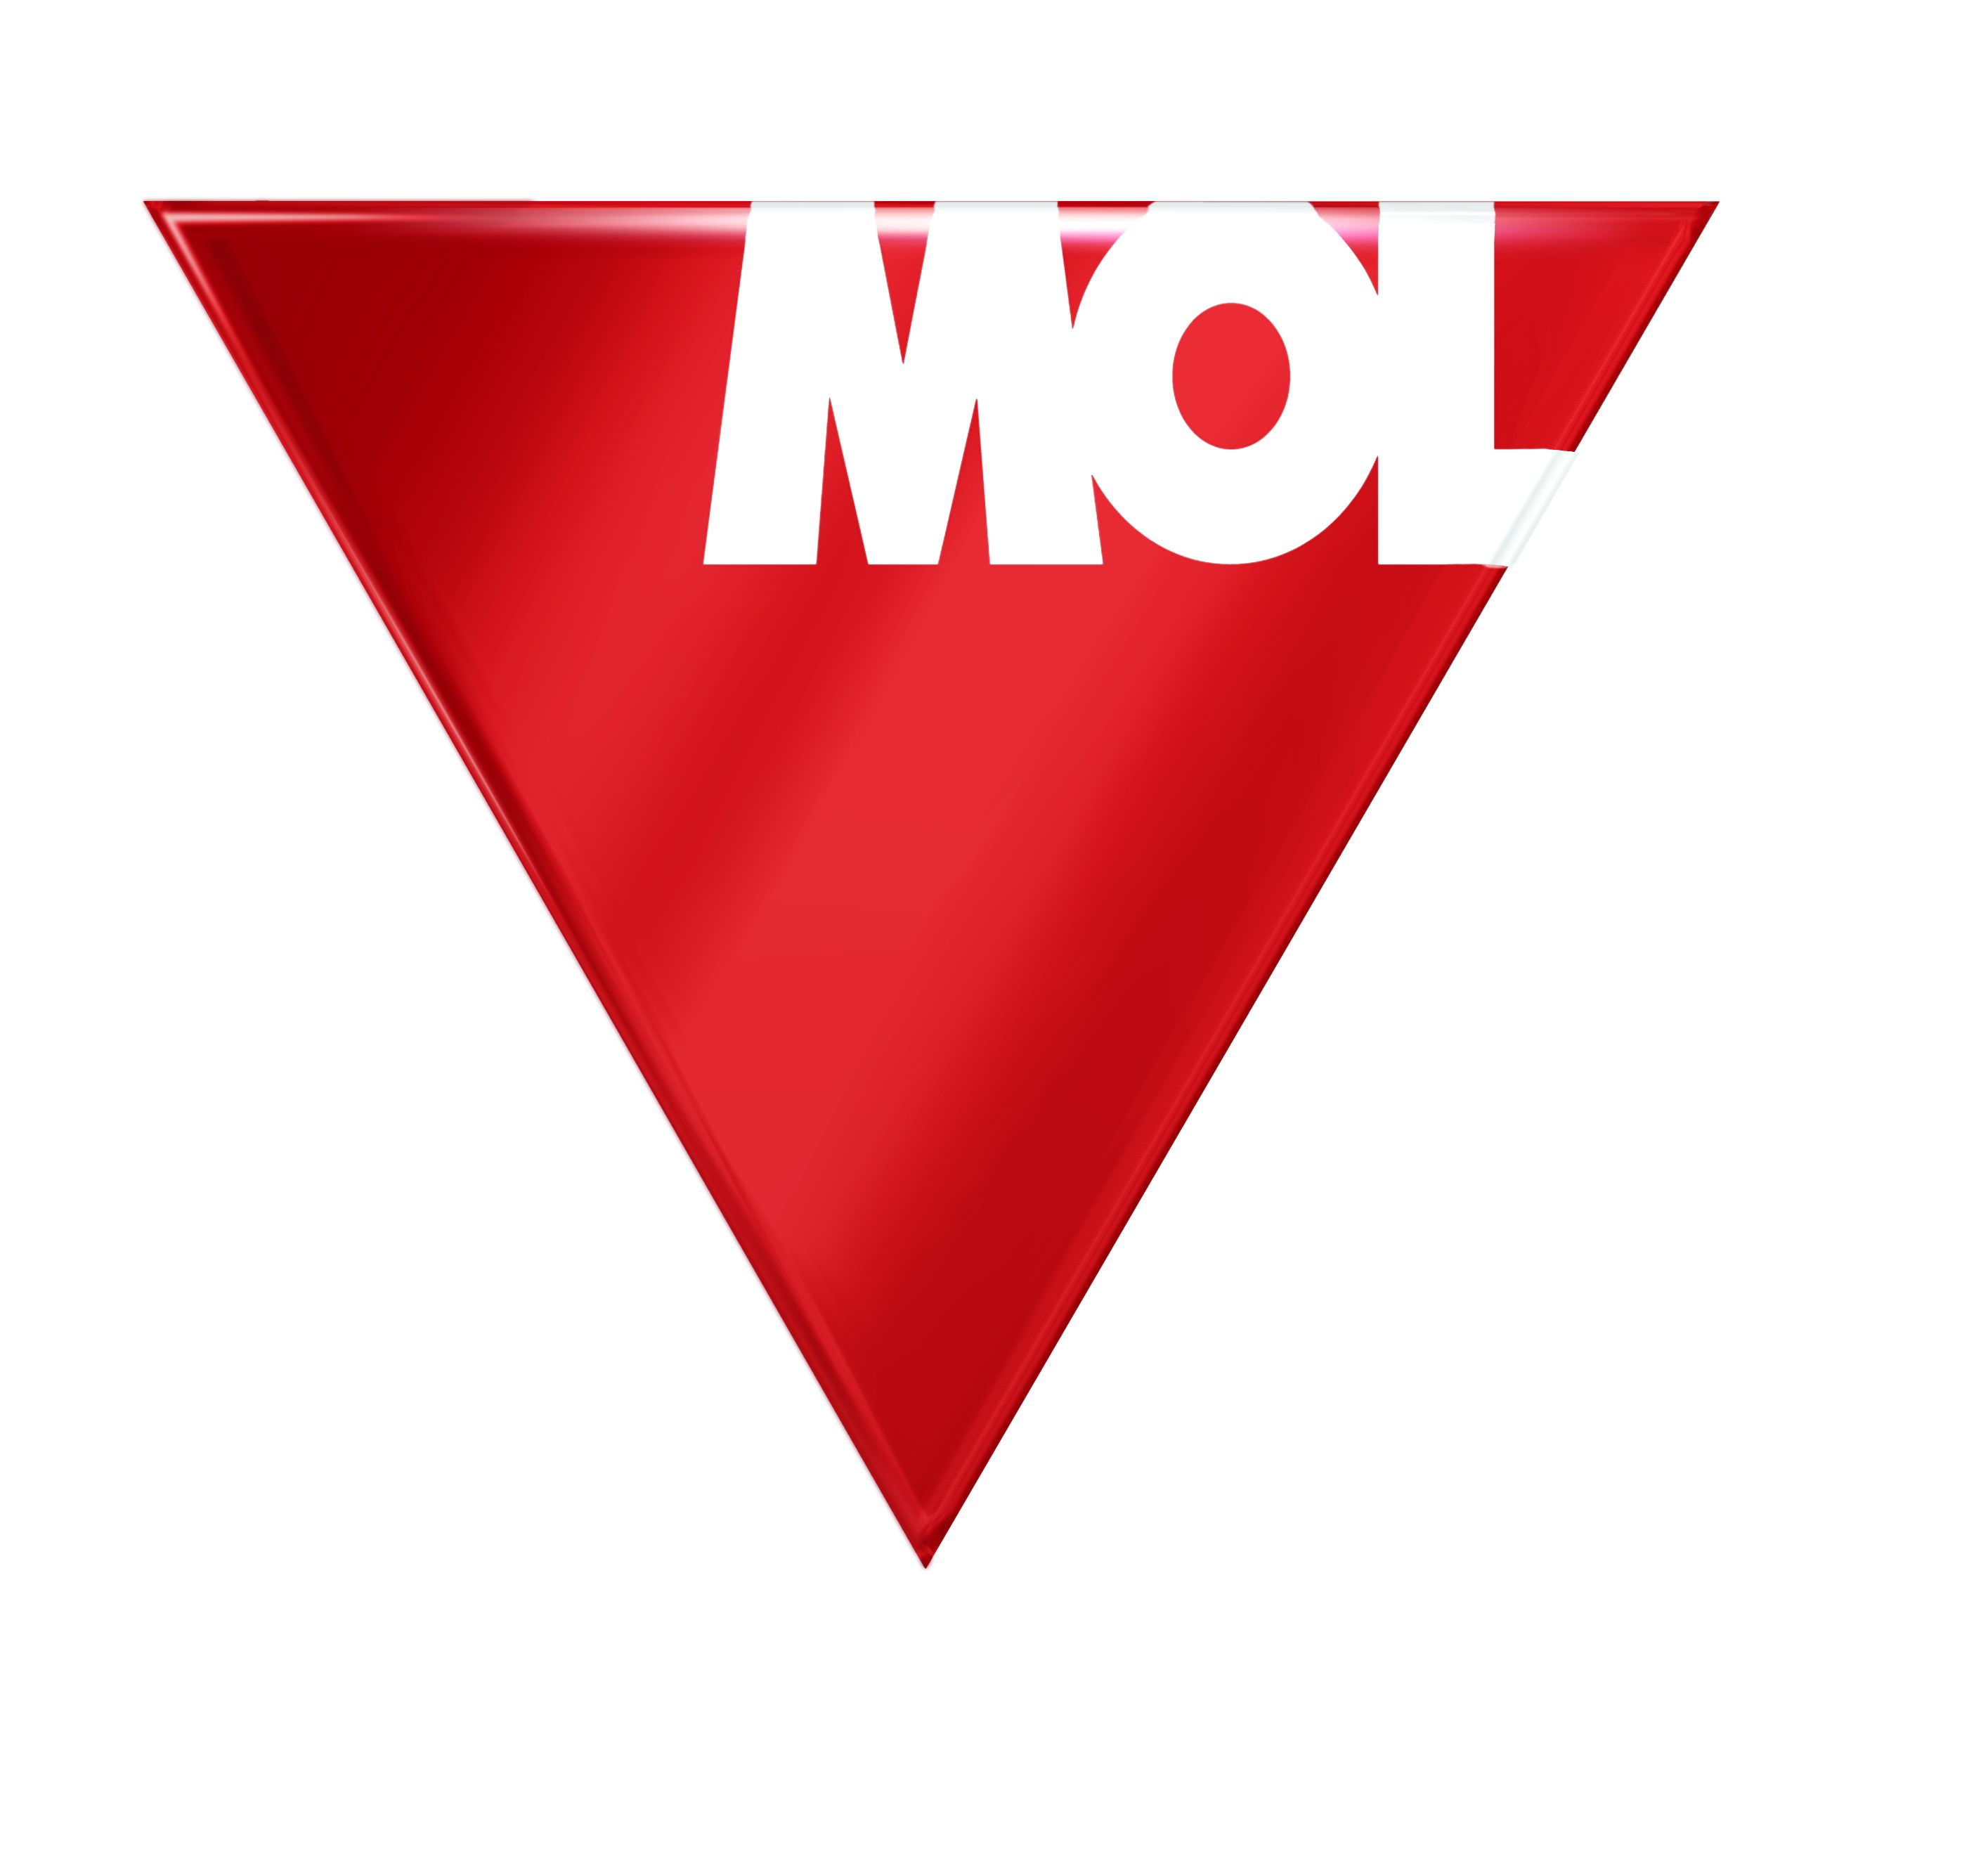 Energy company MOL signs deal with Croatian government